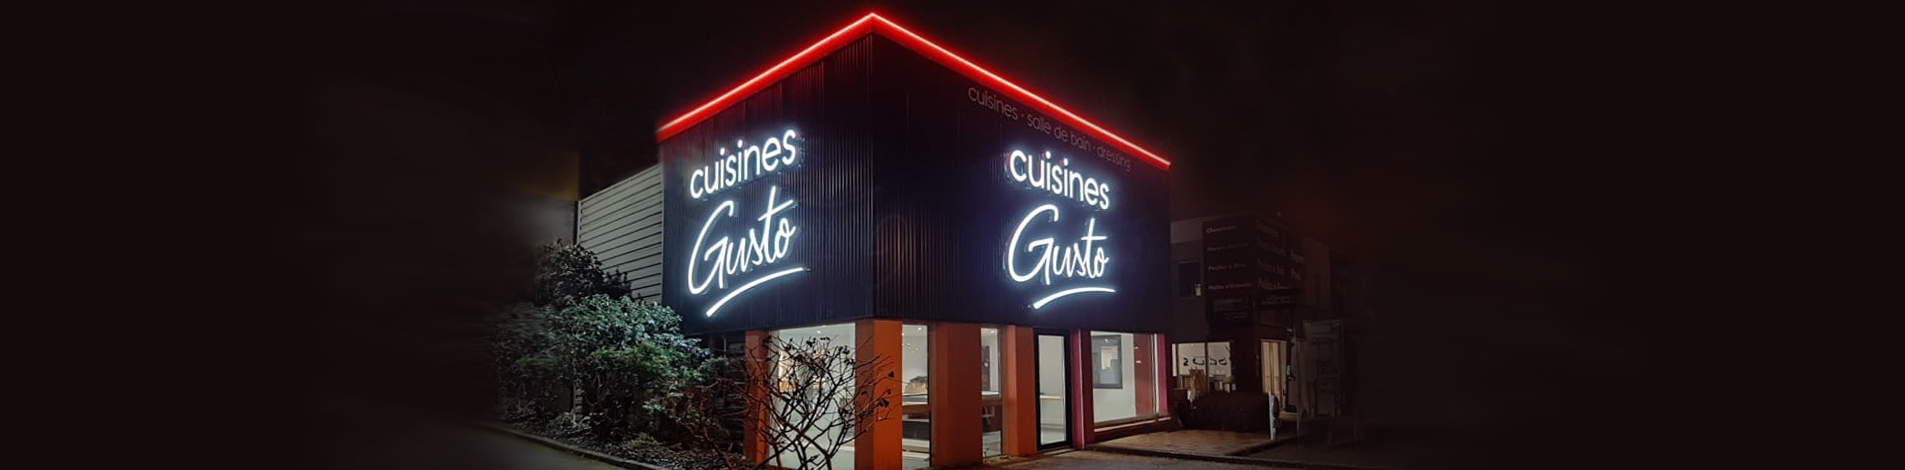 Magasin Cuisines Gusto Rennes